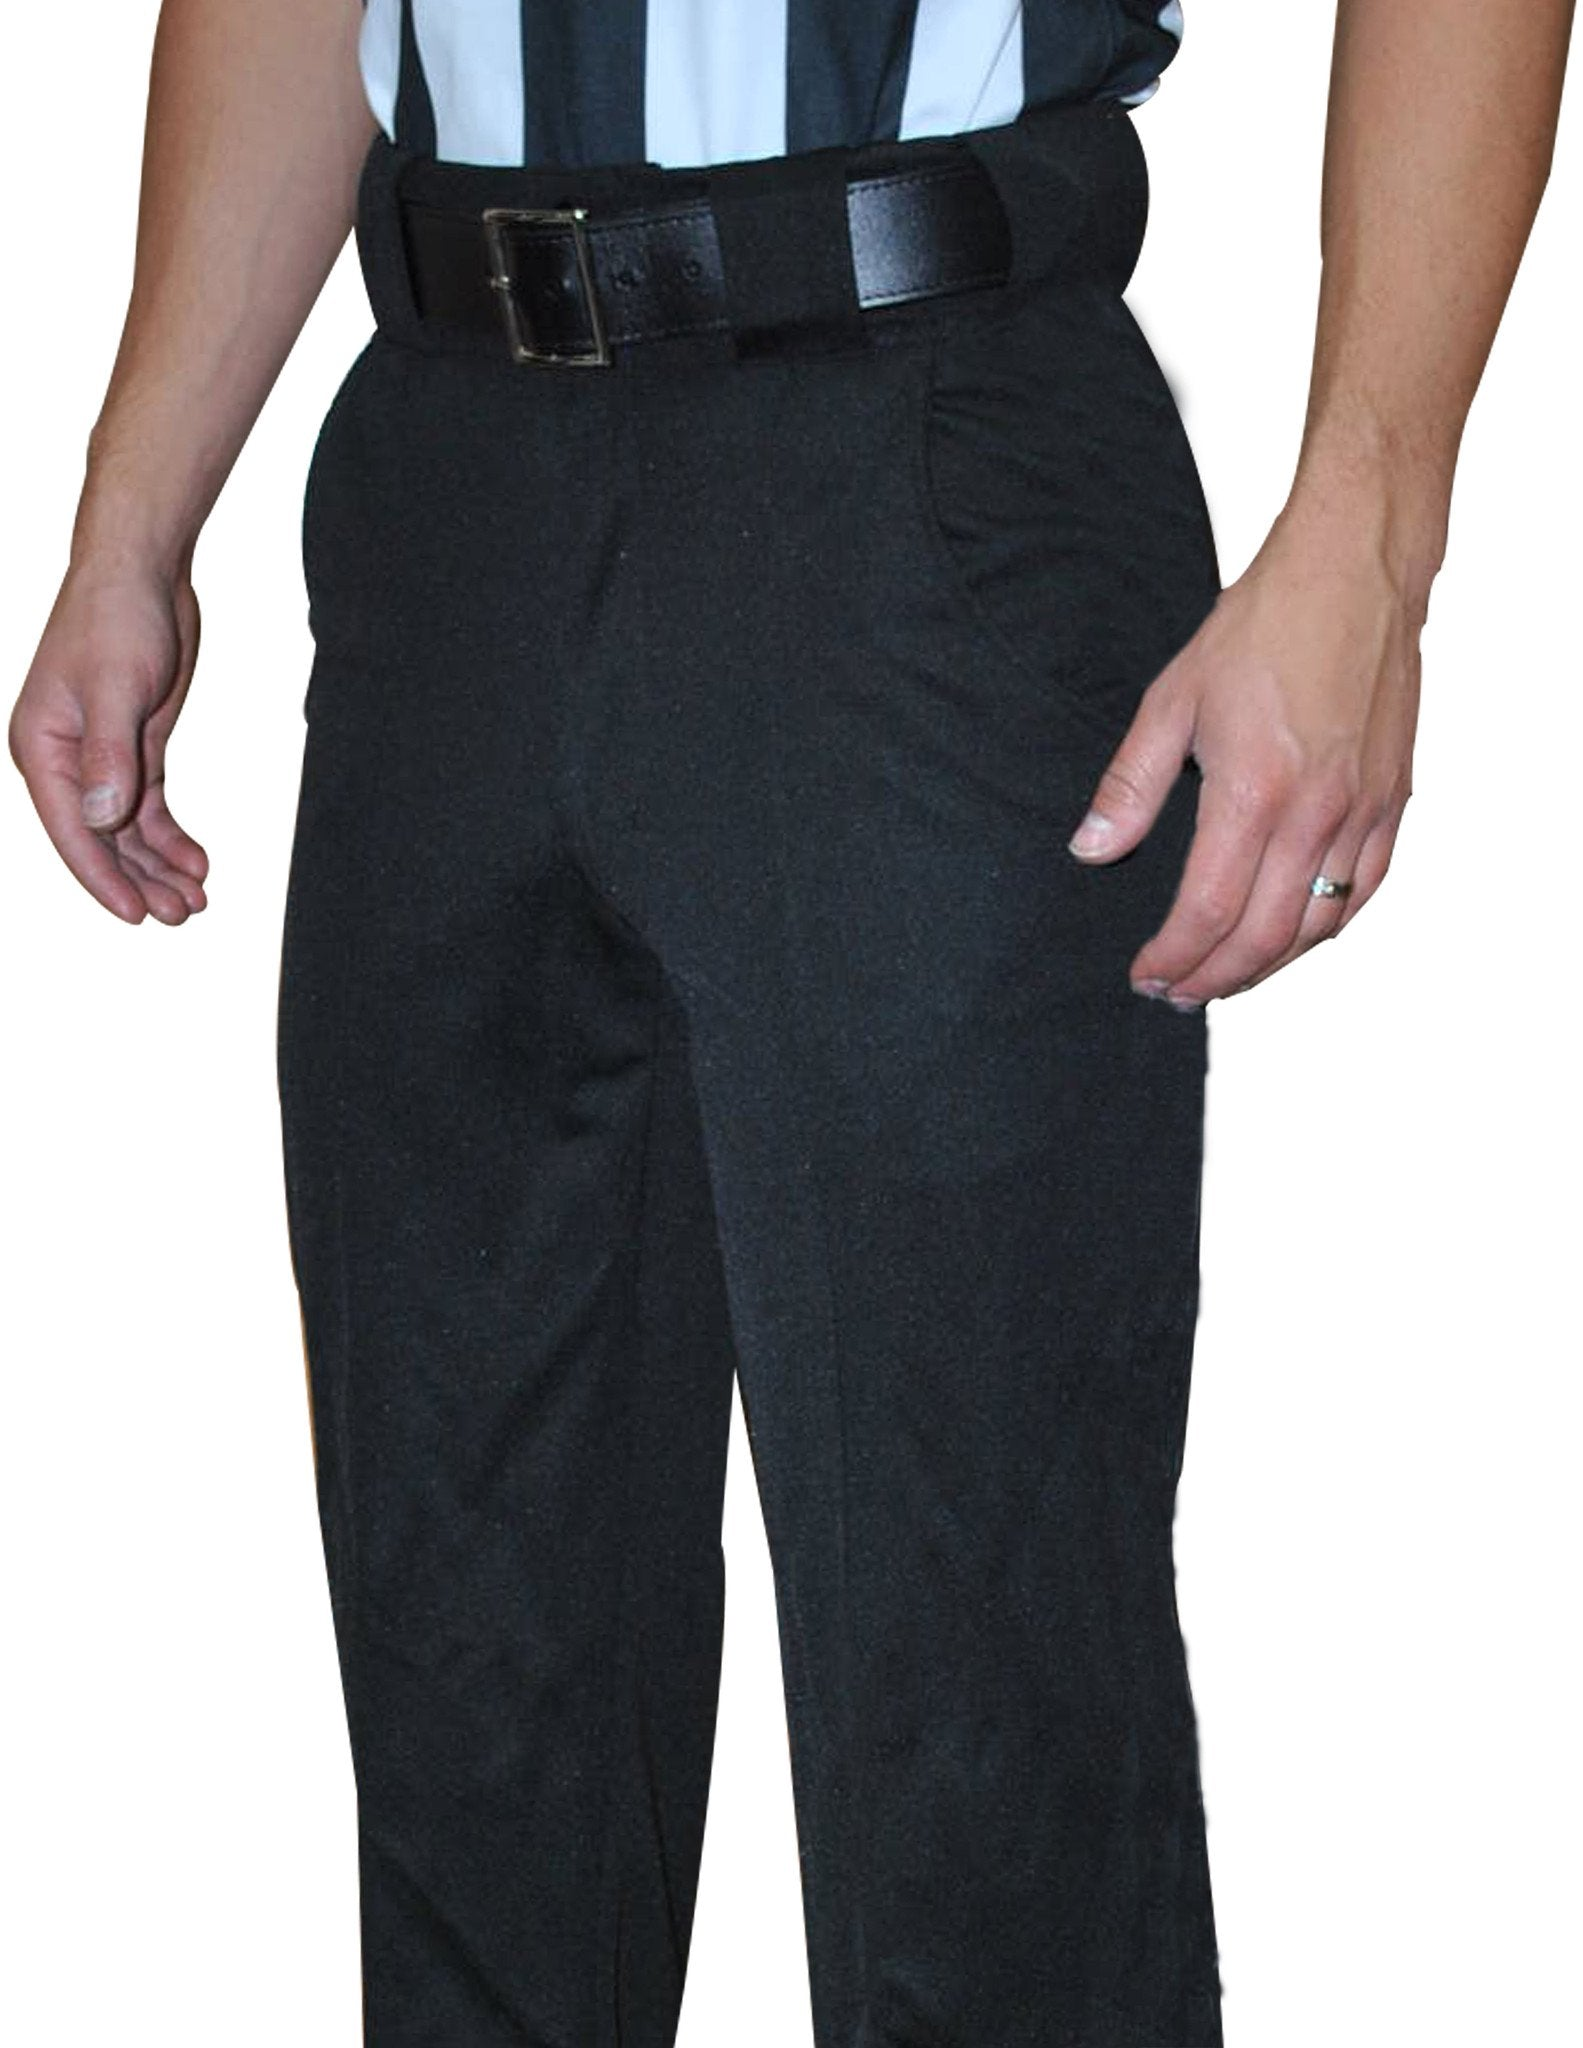 FBS179 - Smitty Lacrosse Solid Black Pants